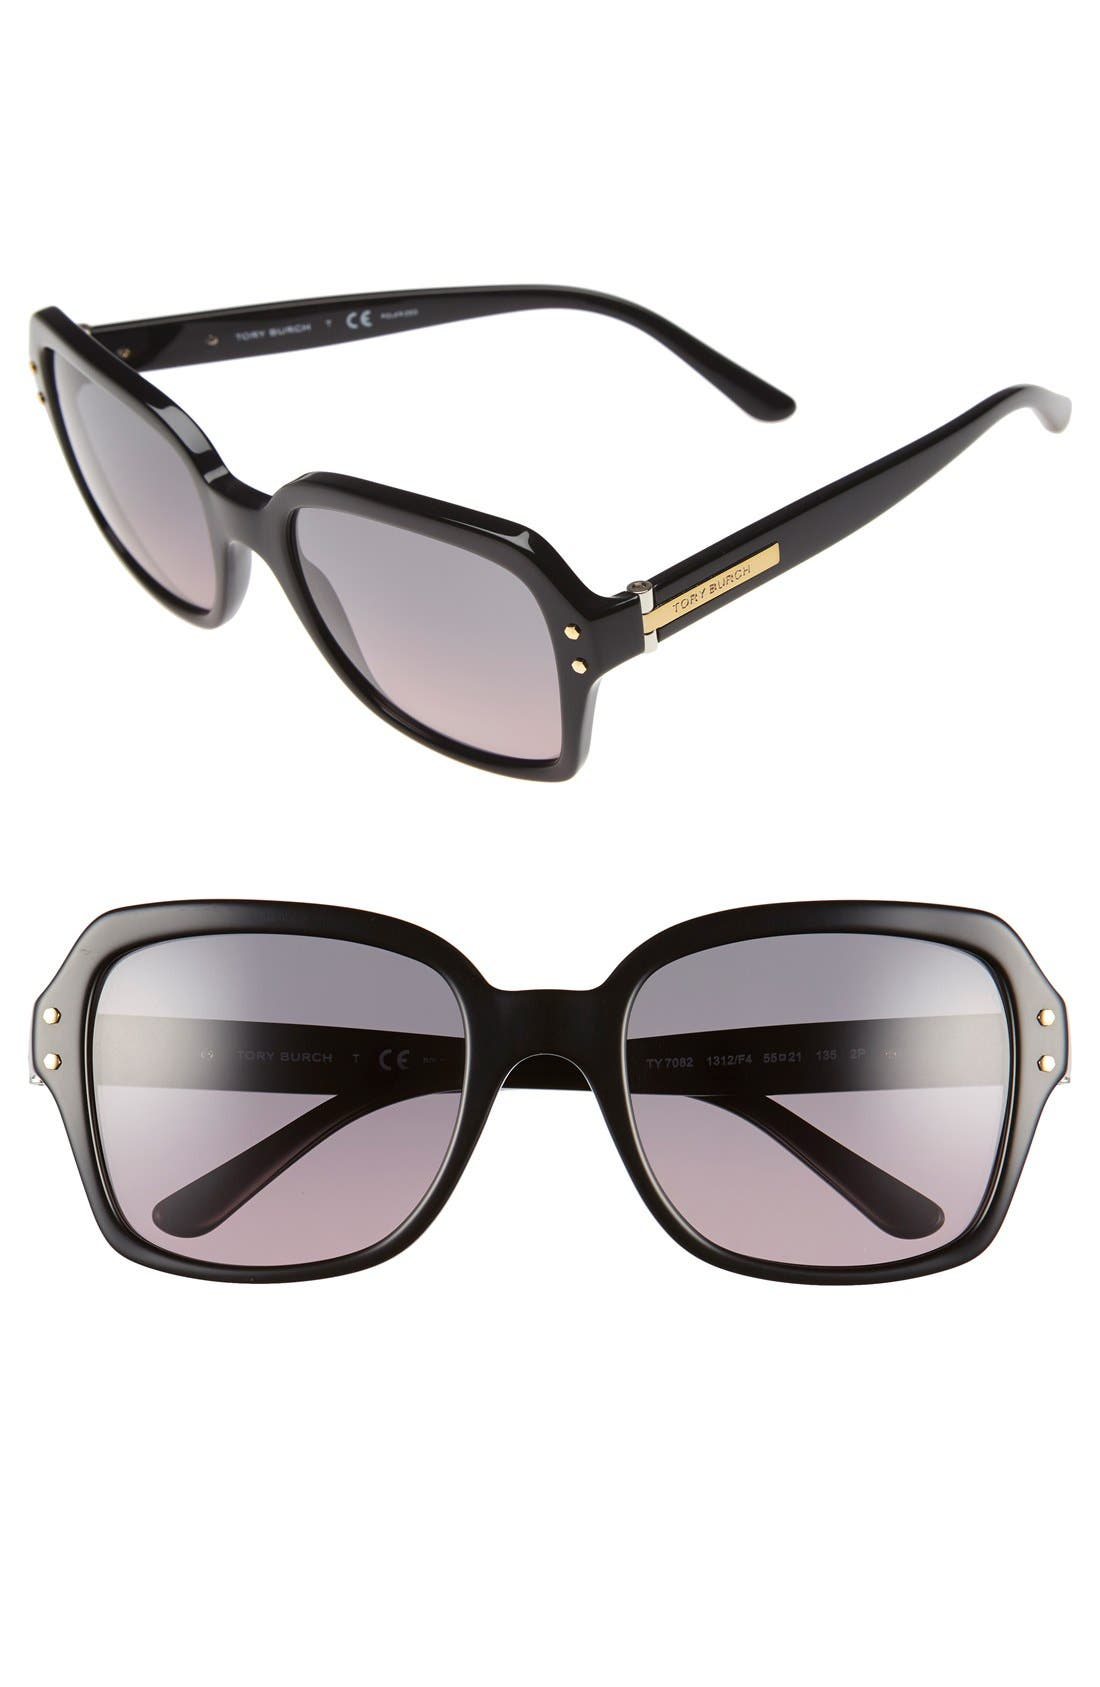 Main Image - Tory Burch 55mm Polarized Sunglasses